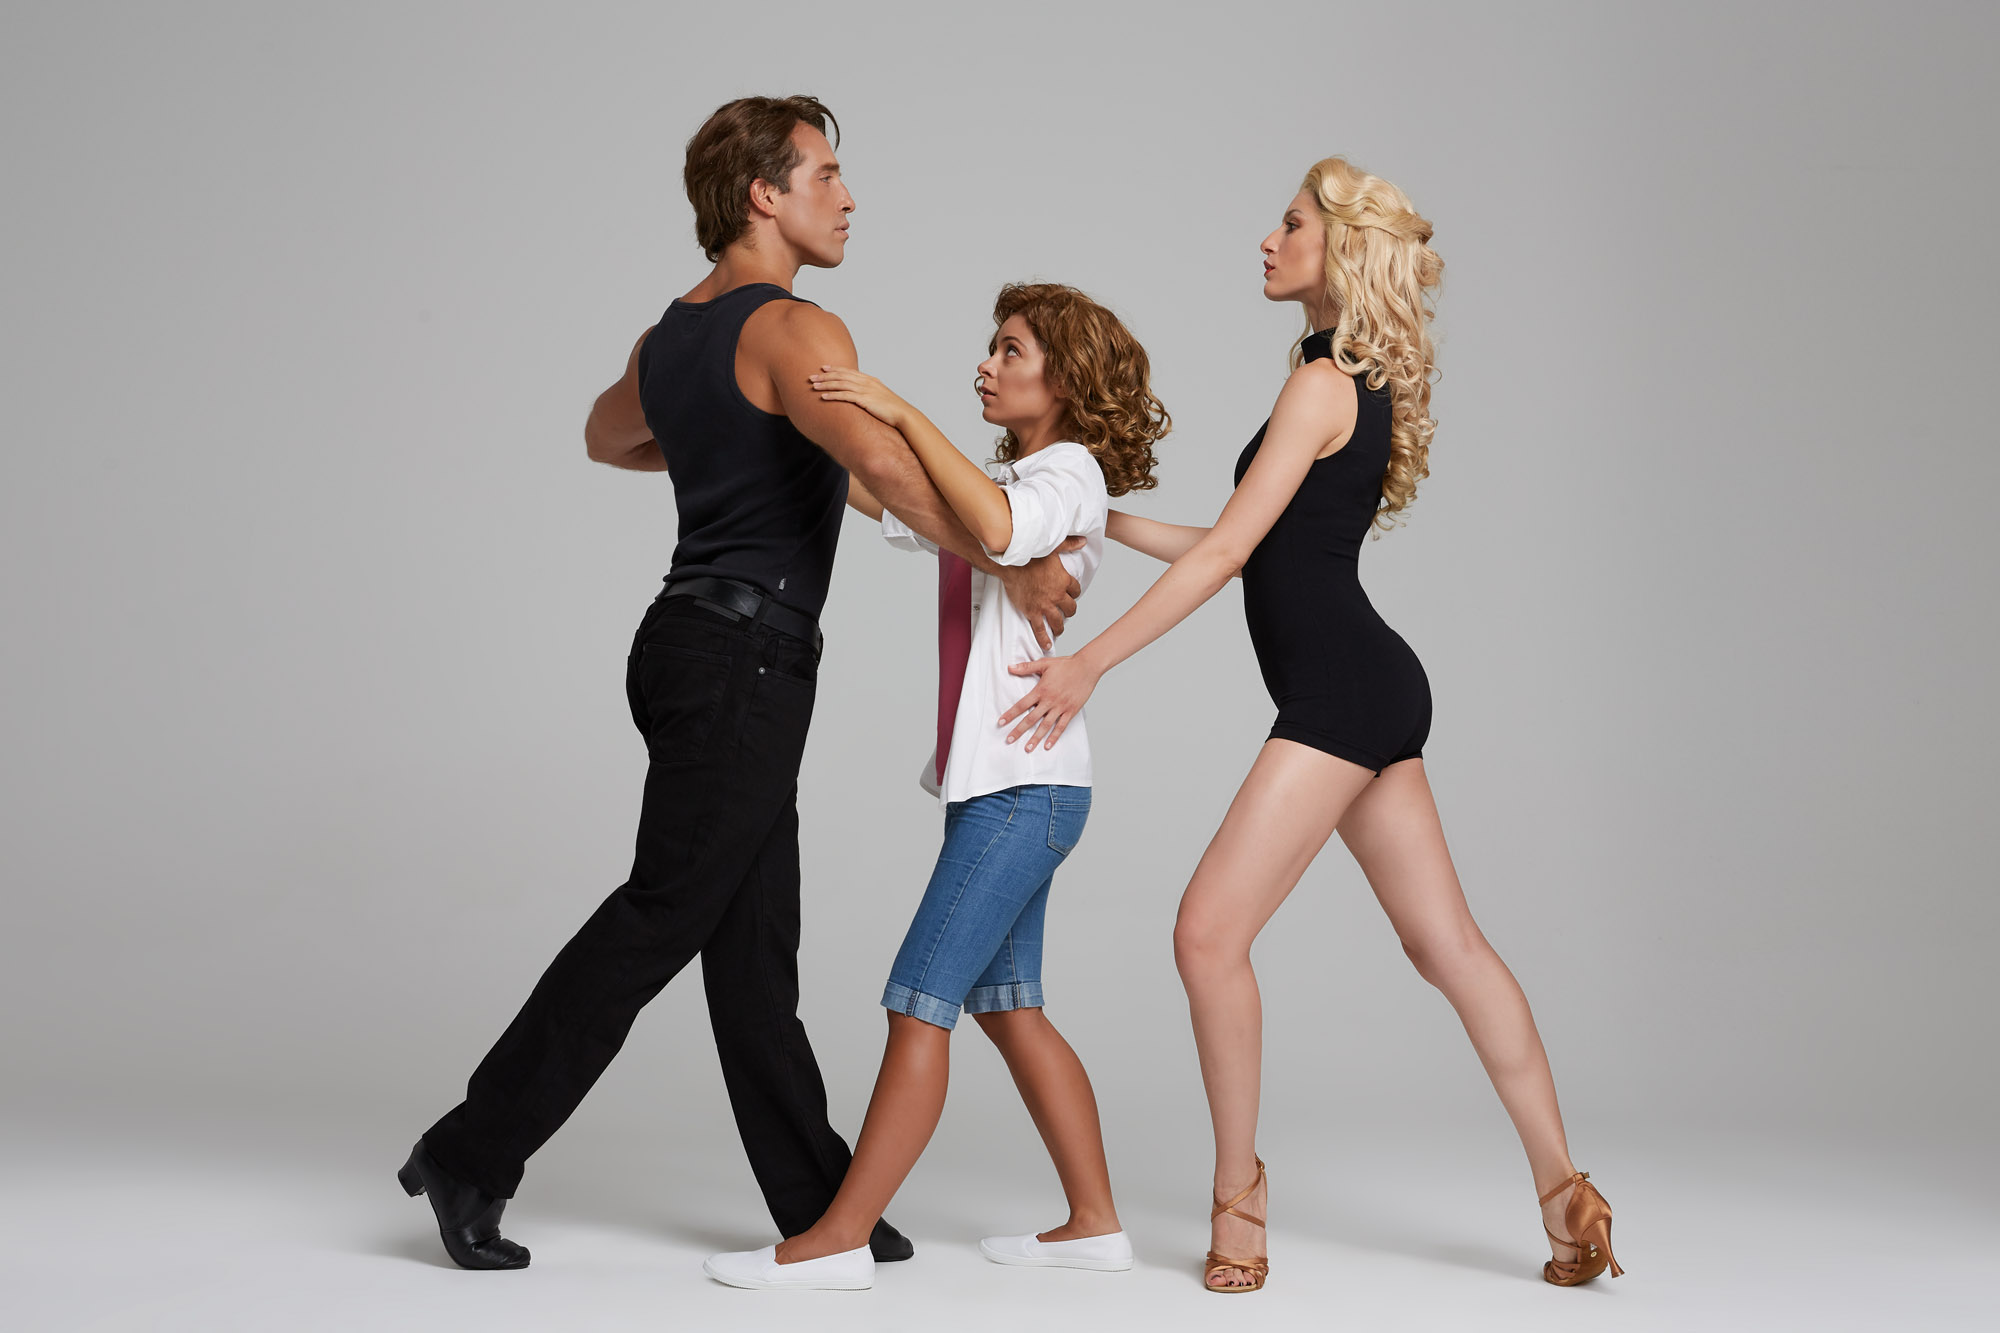 Protagonisti Dirty Dancing 2